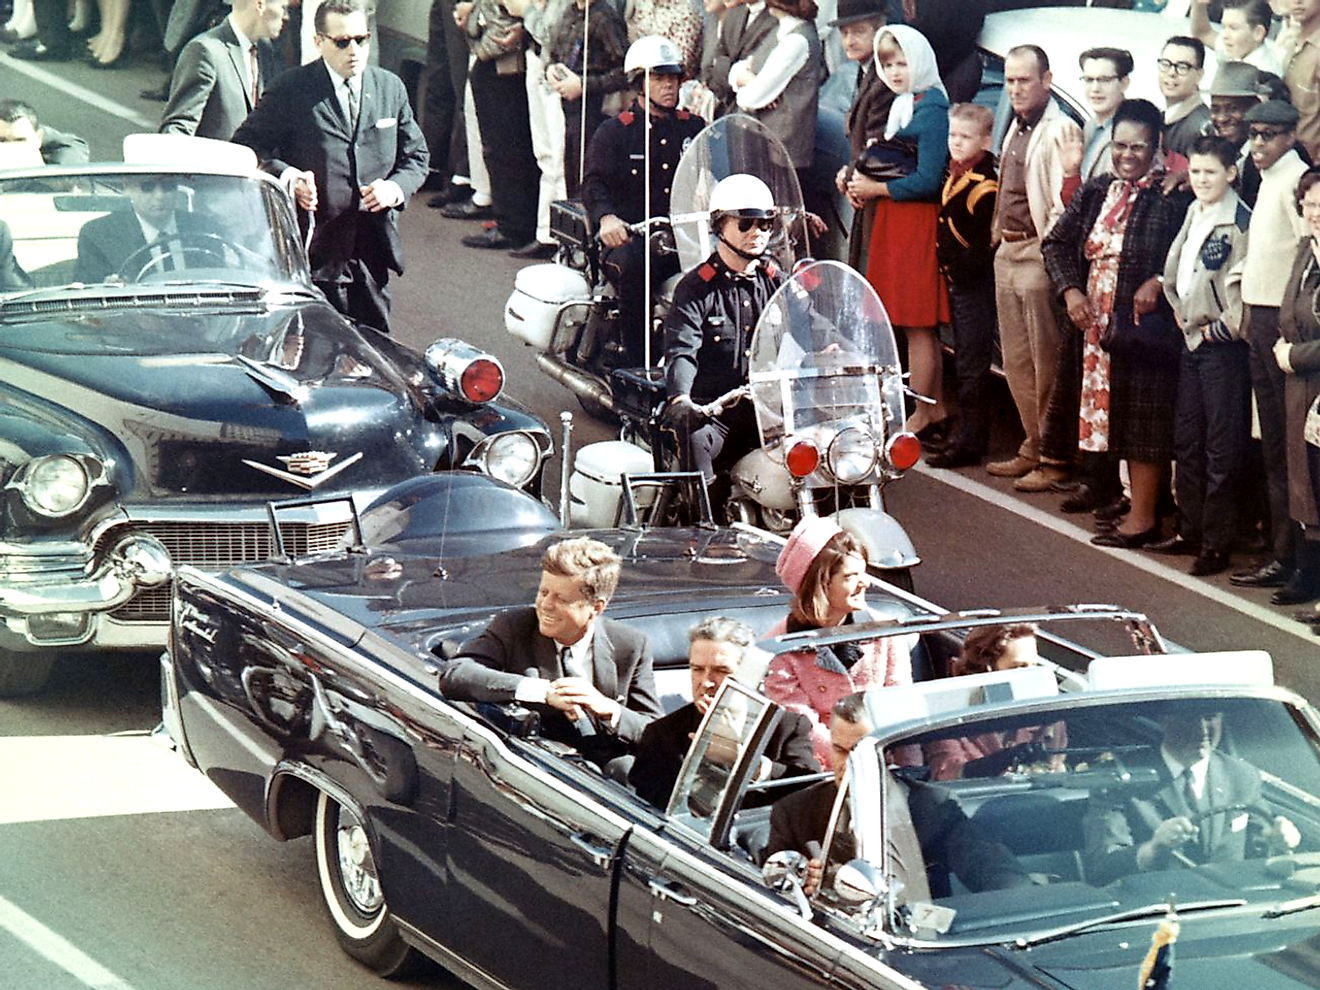 Picture of President Kennedy in the limousine in Dallas, Texas, on Main Street, minutes before the assassination. Image credit: Walt Cisco, Dallas Morning News/Public domain